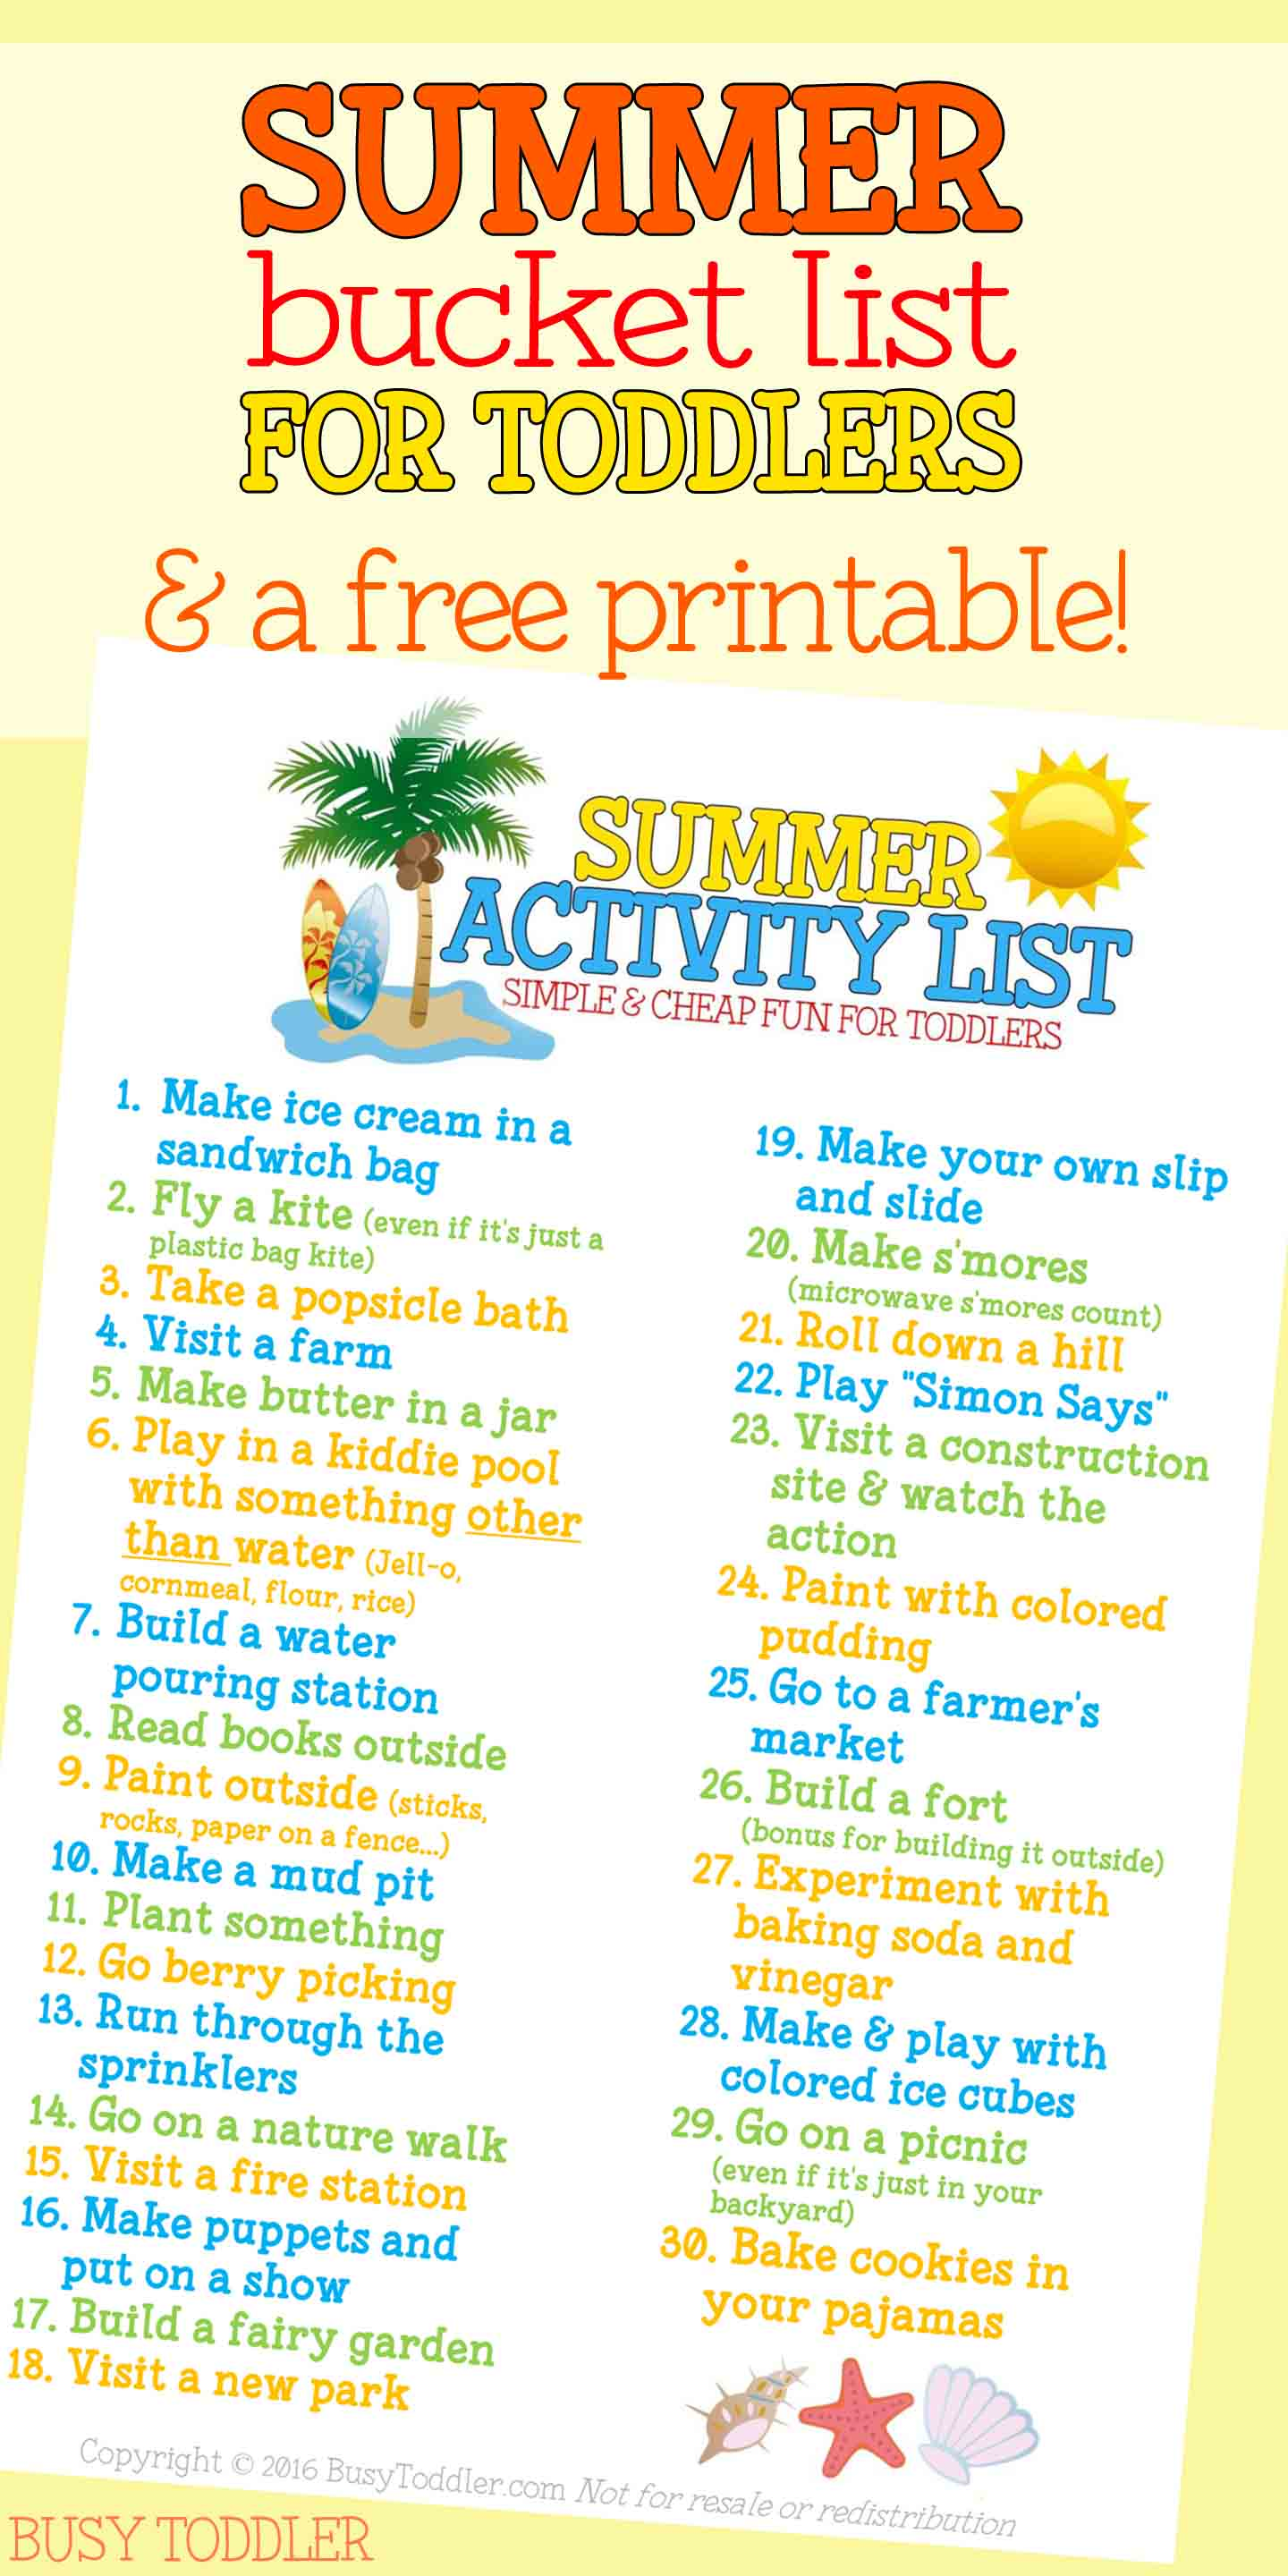 SUMMER ACTIVITY LIST FOR TODDLERS: Simple, cheap and easy ideas for parents to do with their toddlers this summer; terrific ideas for summer play with toddlers; great ways to make it to nap time with tots